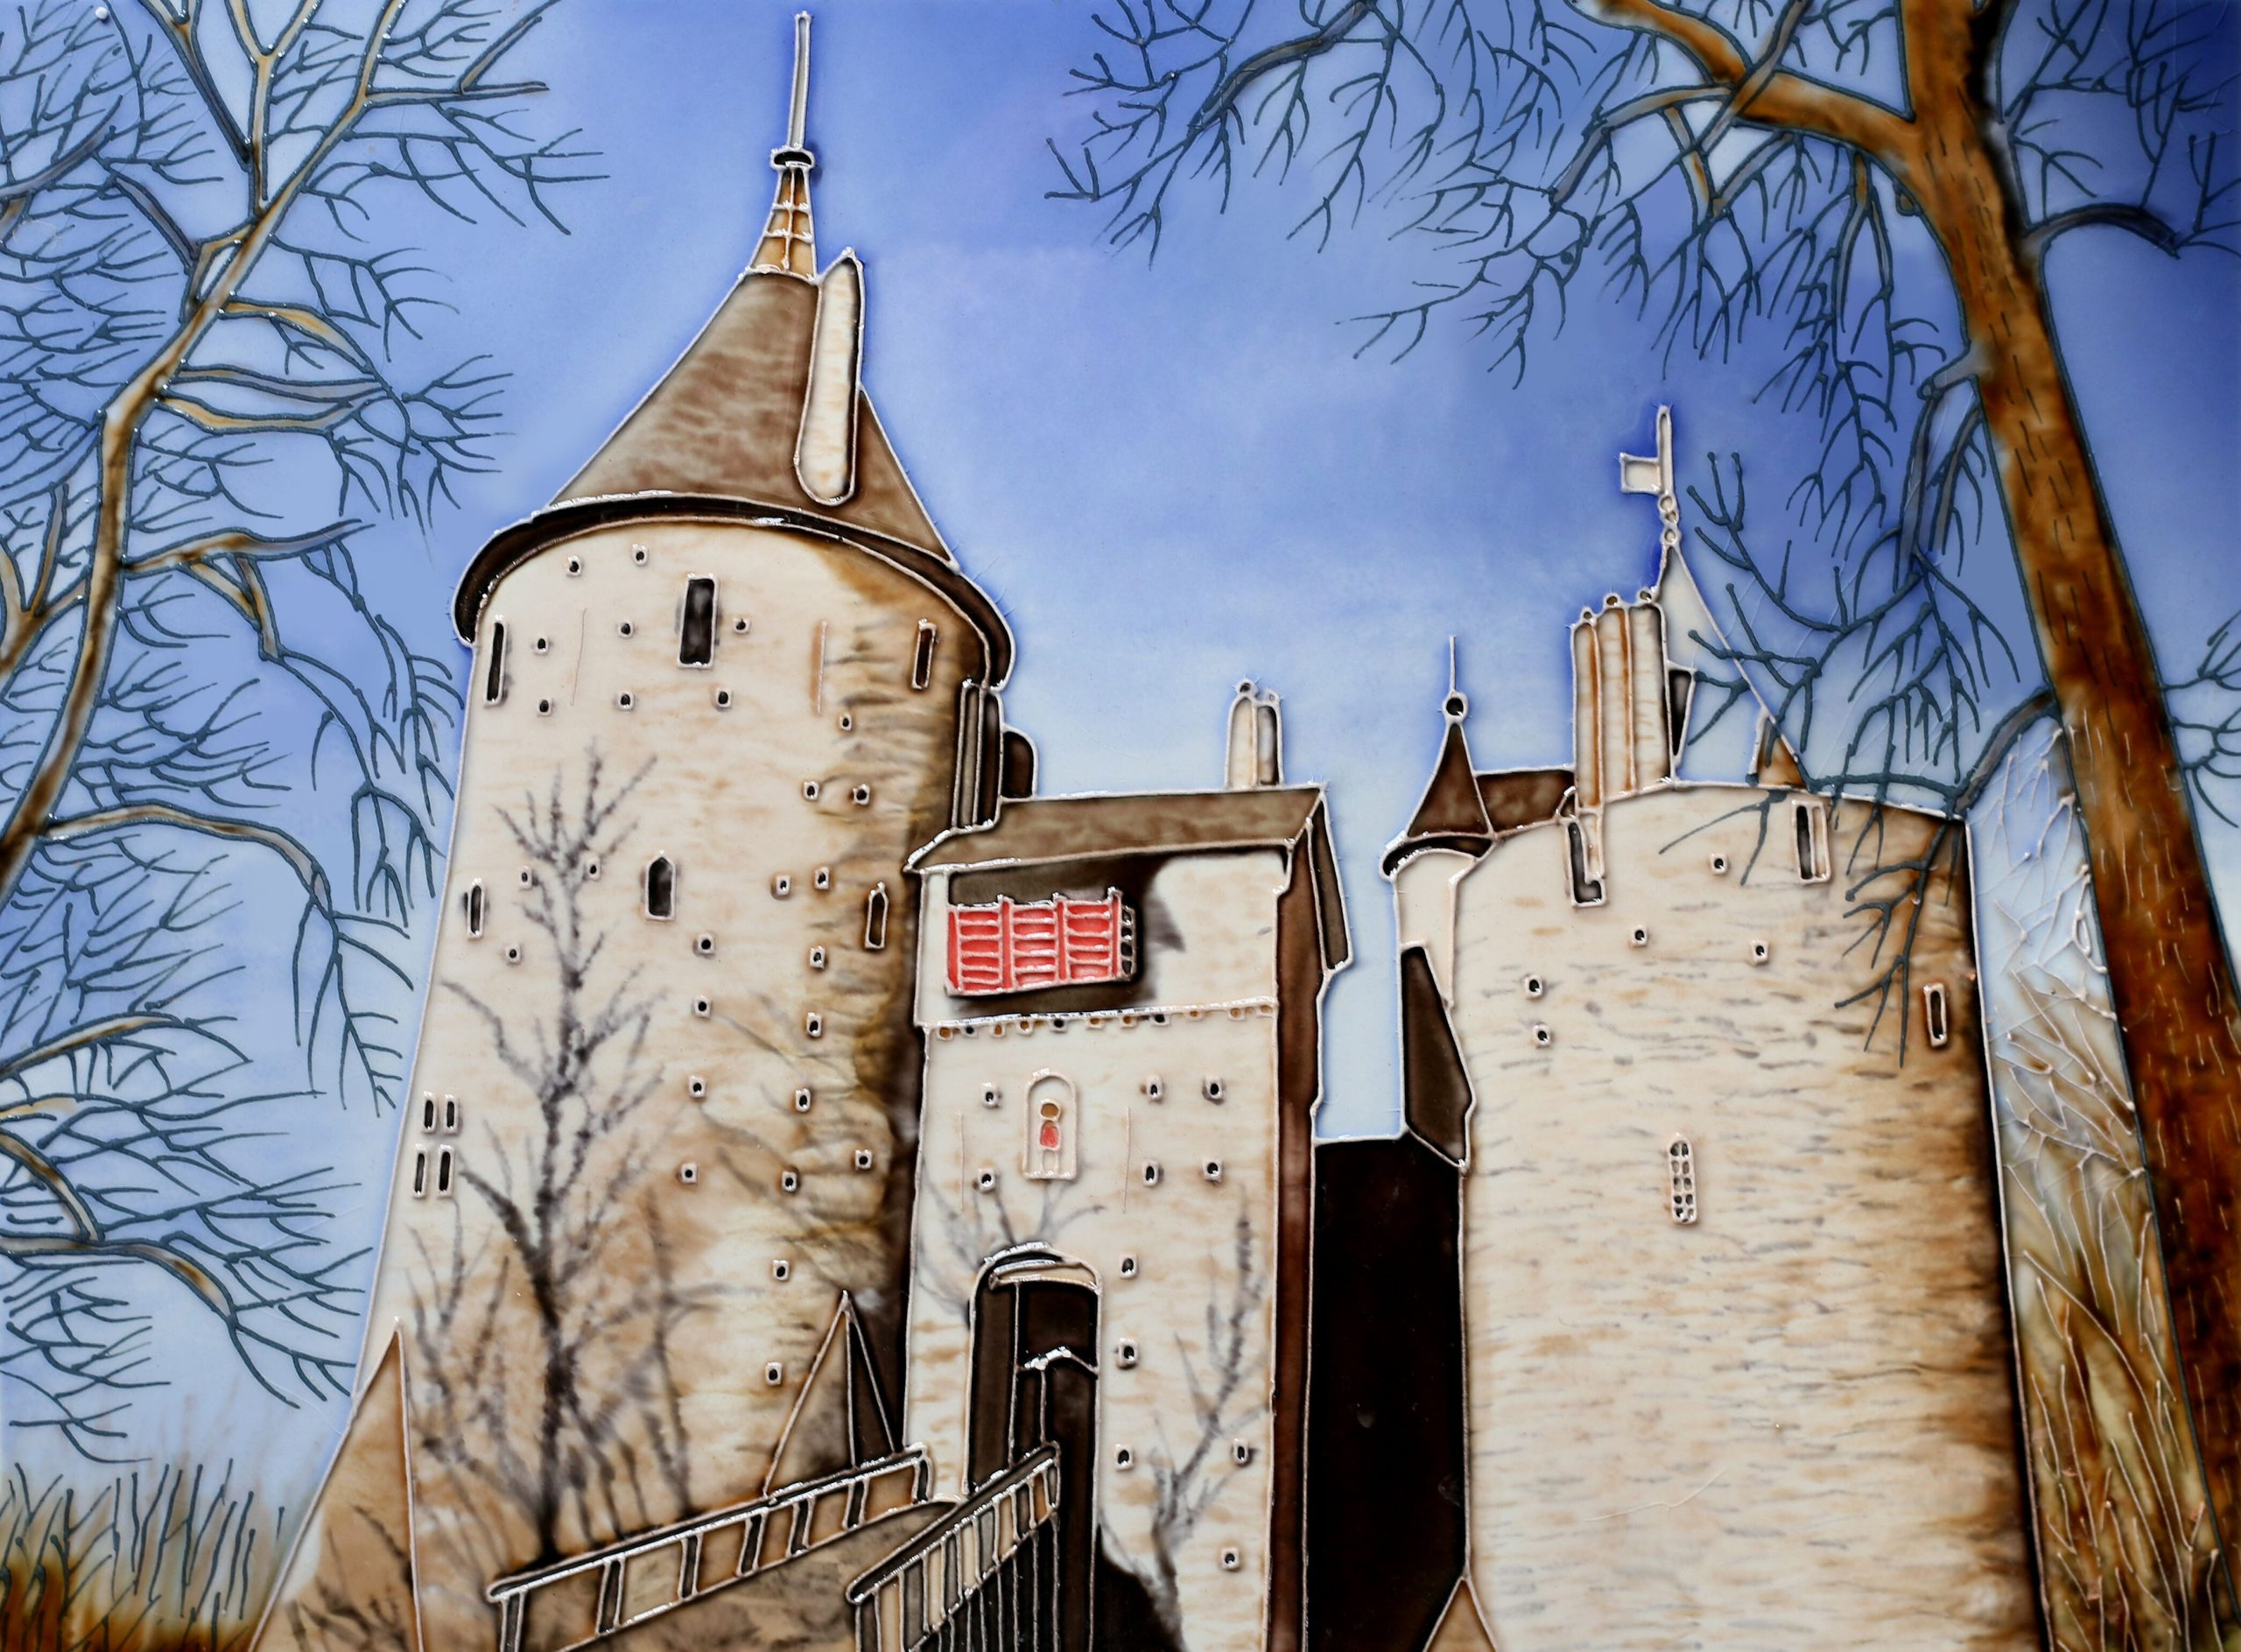 Castell Coch Winter 11×14 (165093)